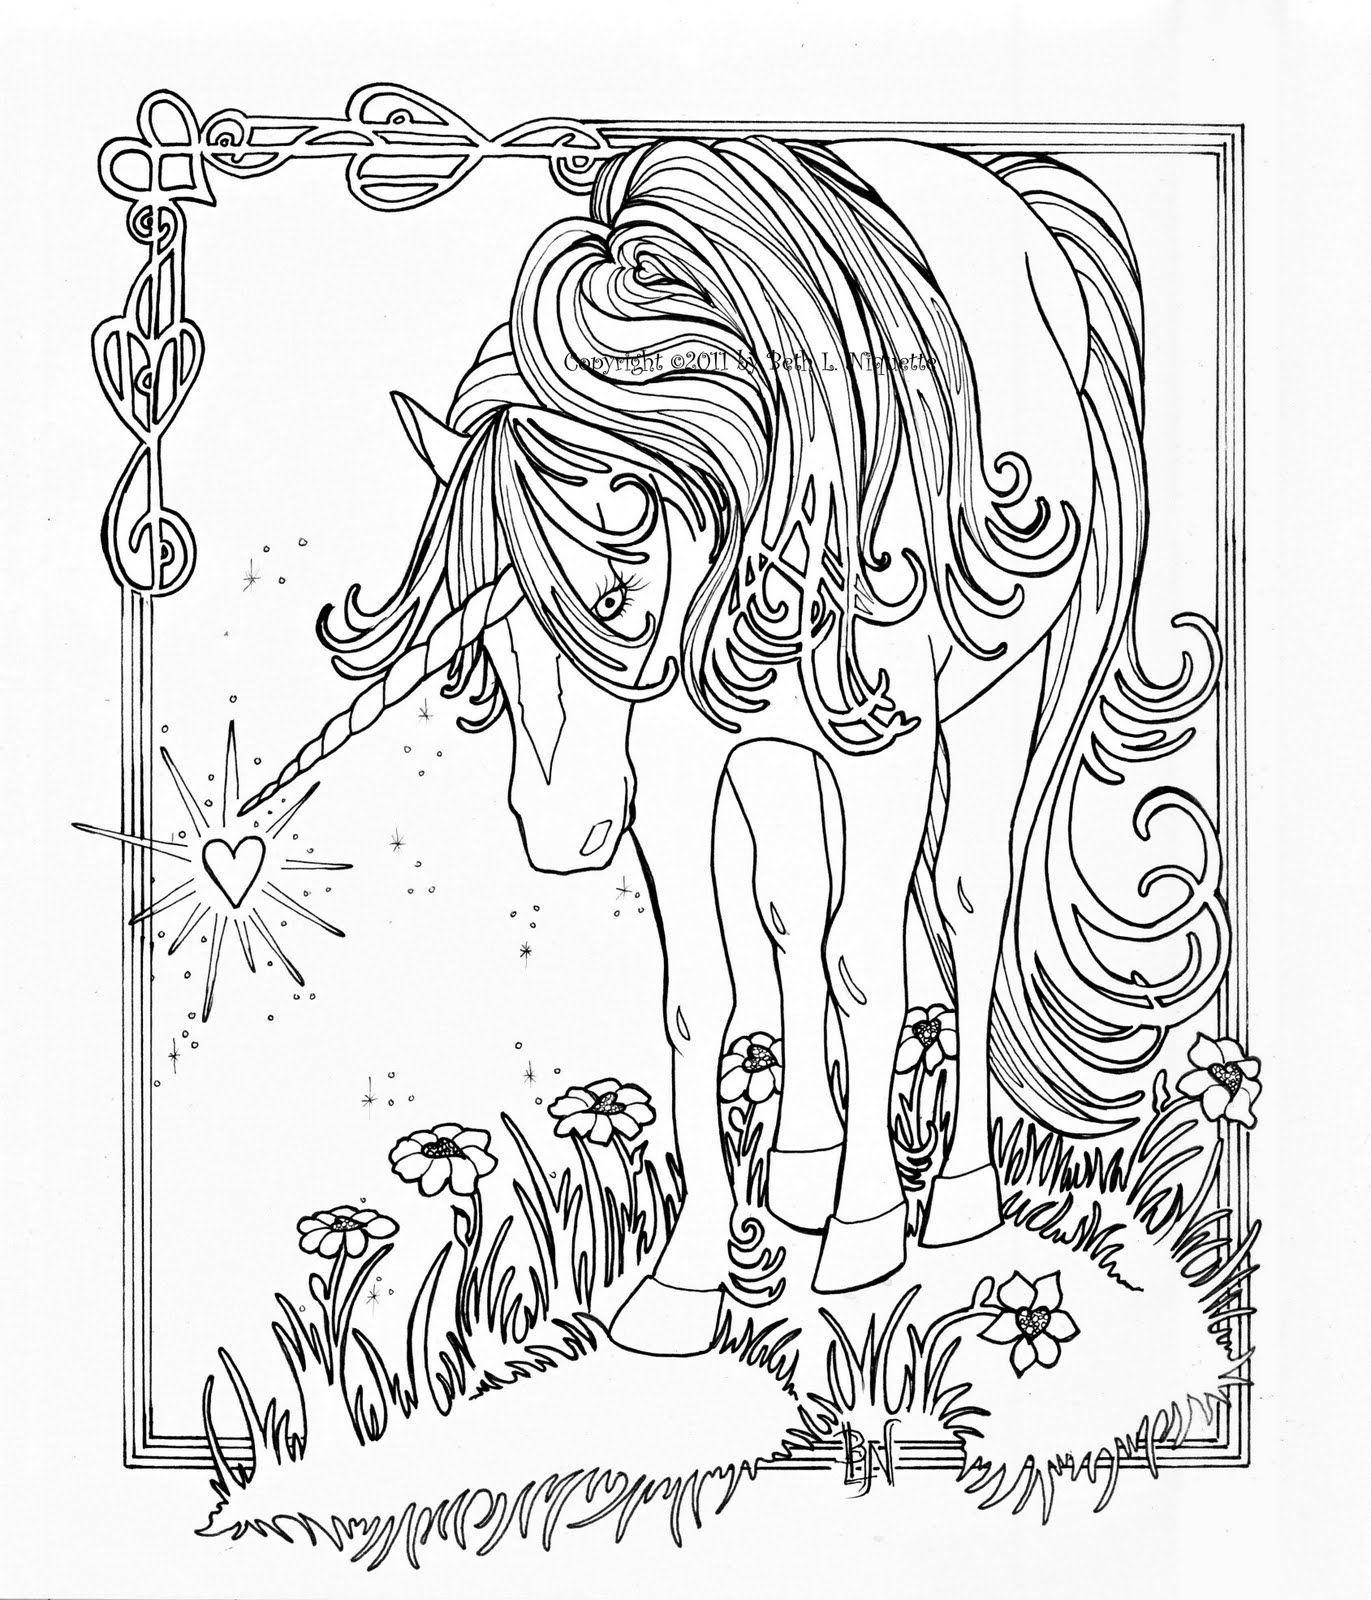 Princess and unicorn coloring pages - Unicorn Coloring Pages For Adults Unicorn With Wings Coloring Pages